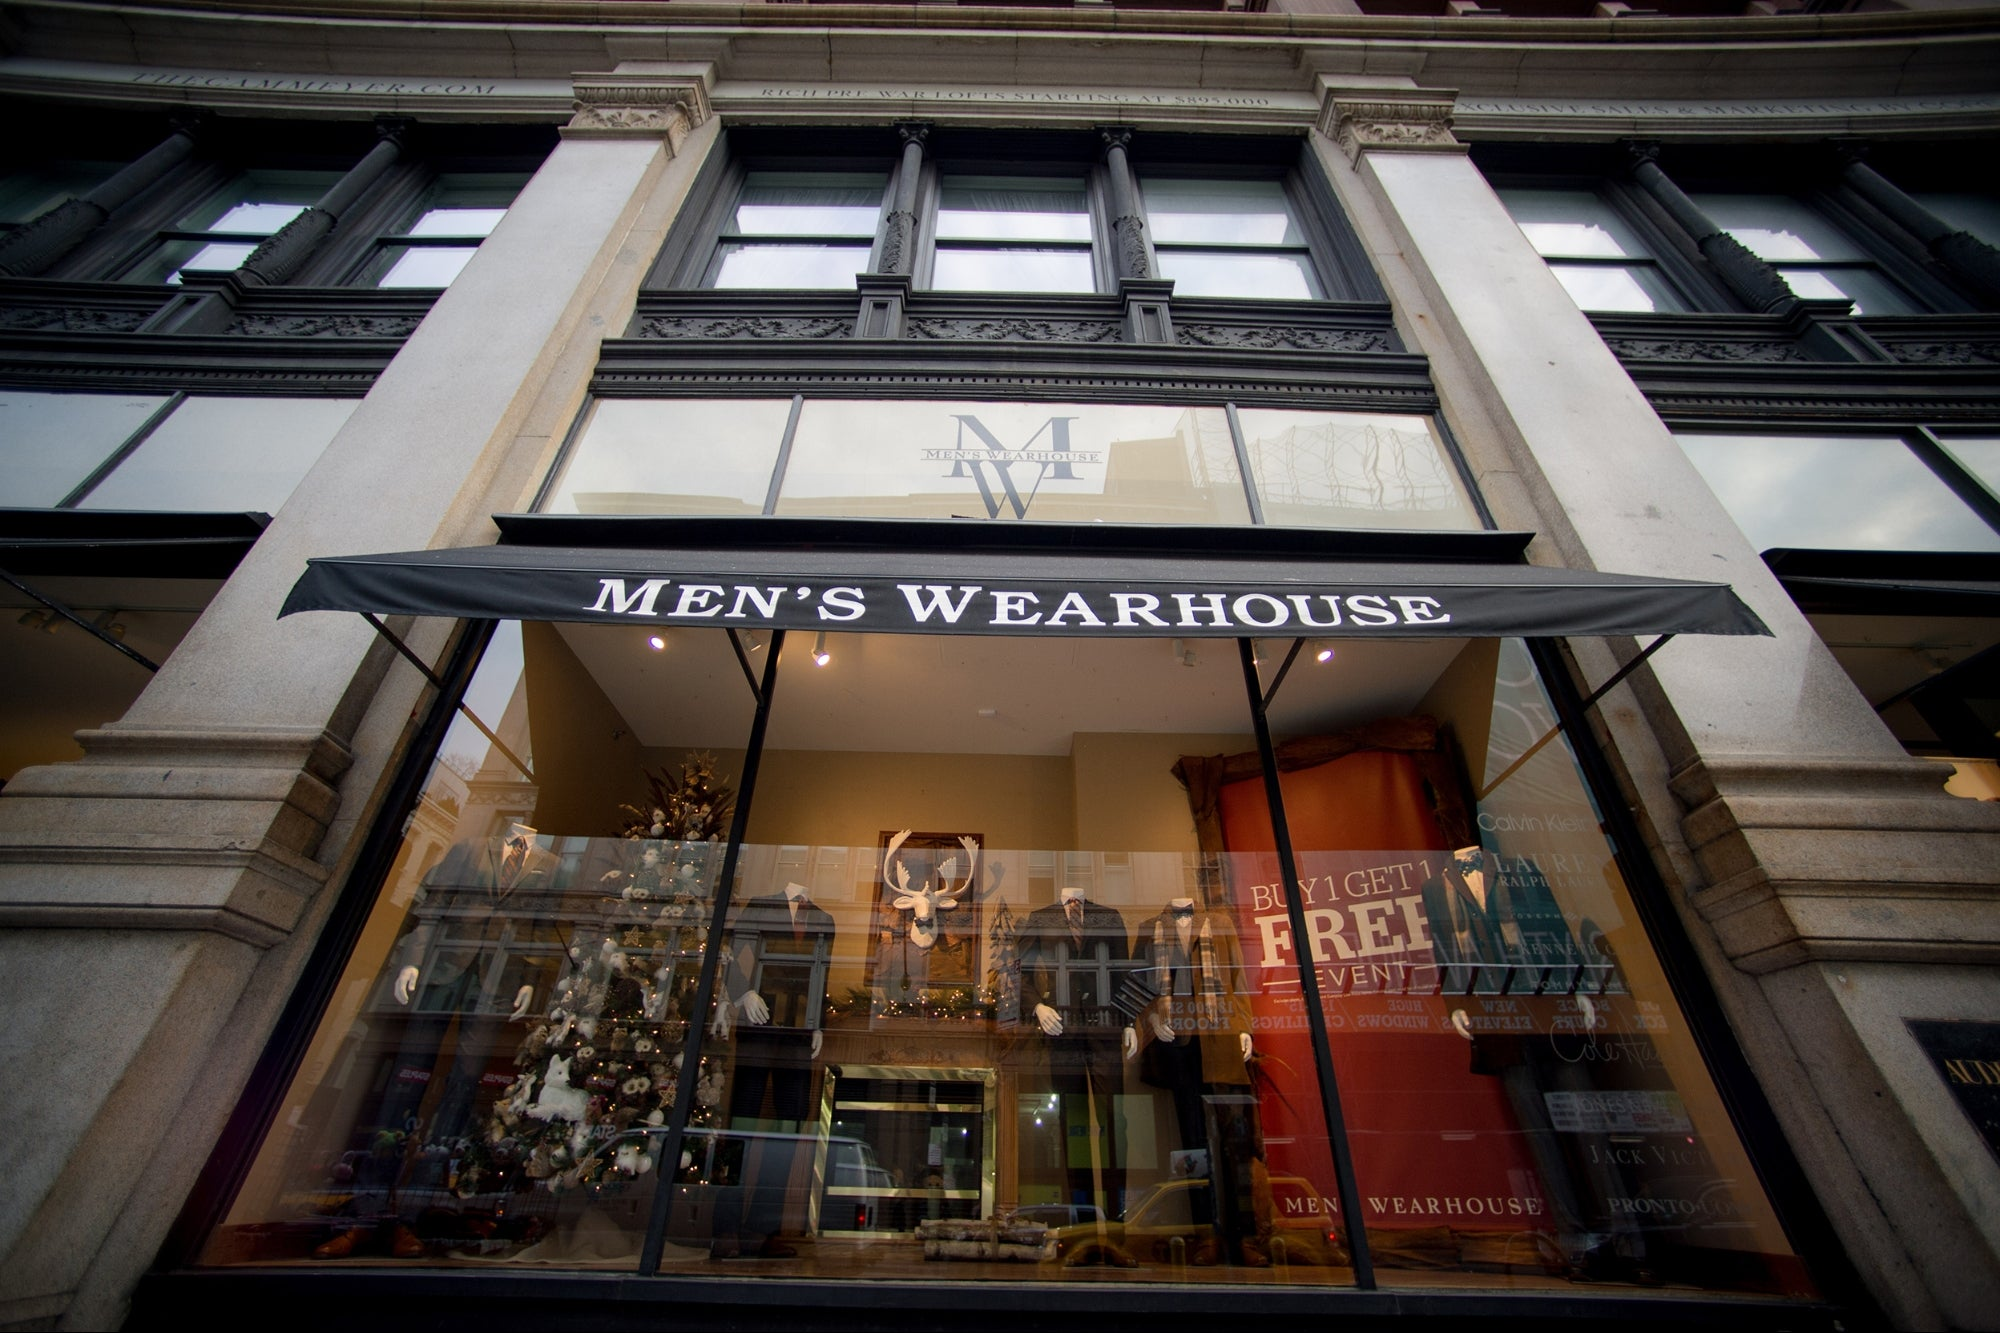 How Brands Like Joybird and Men's Wearhouse Are Rewriting the Marketing Playbook